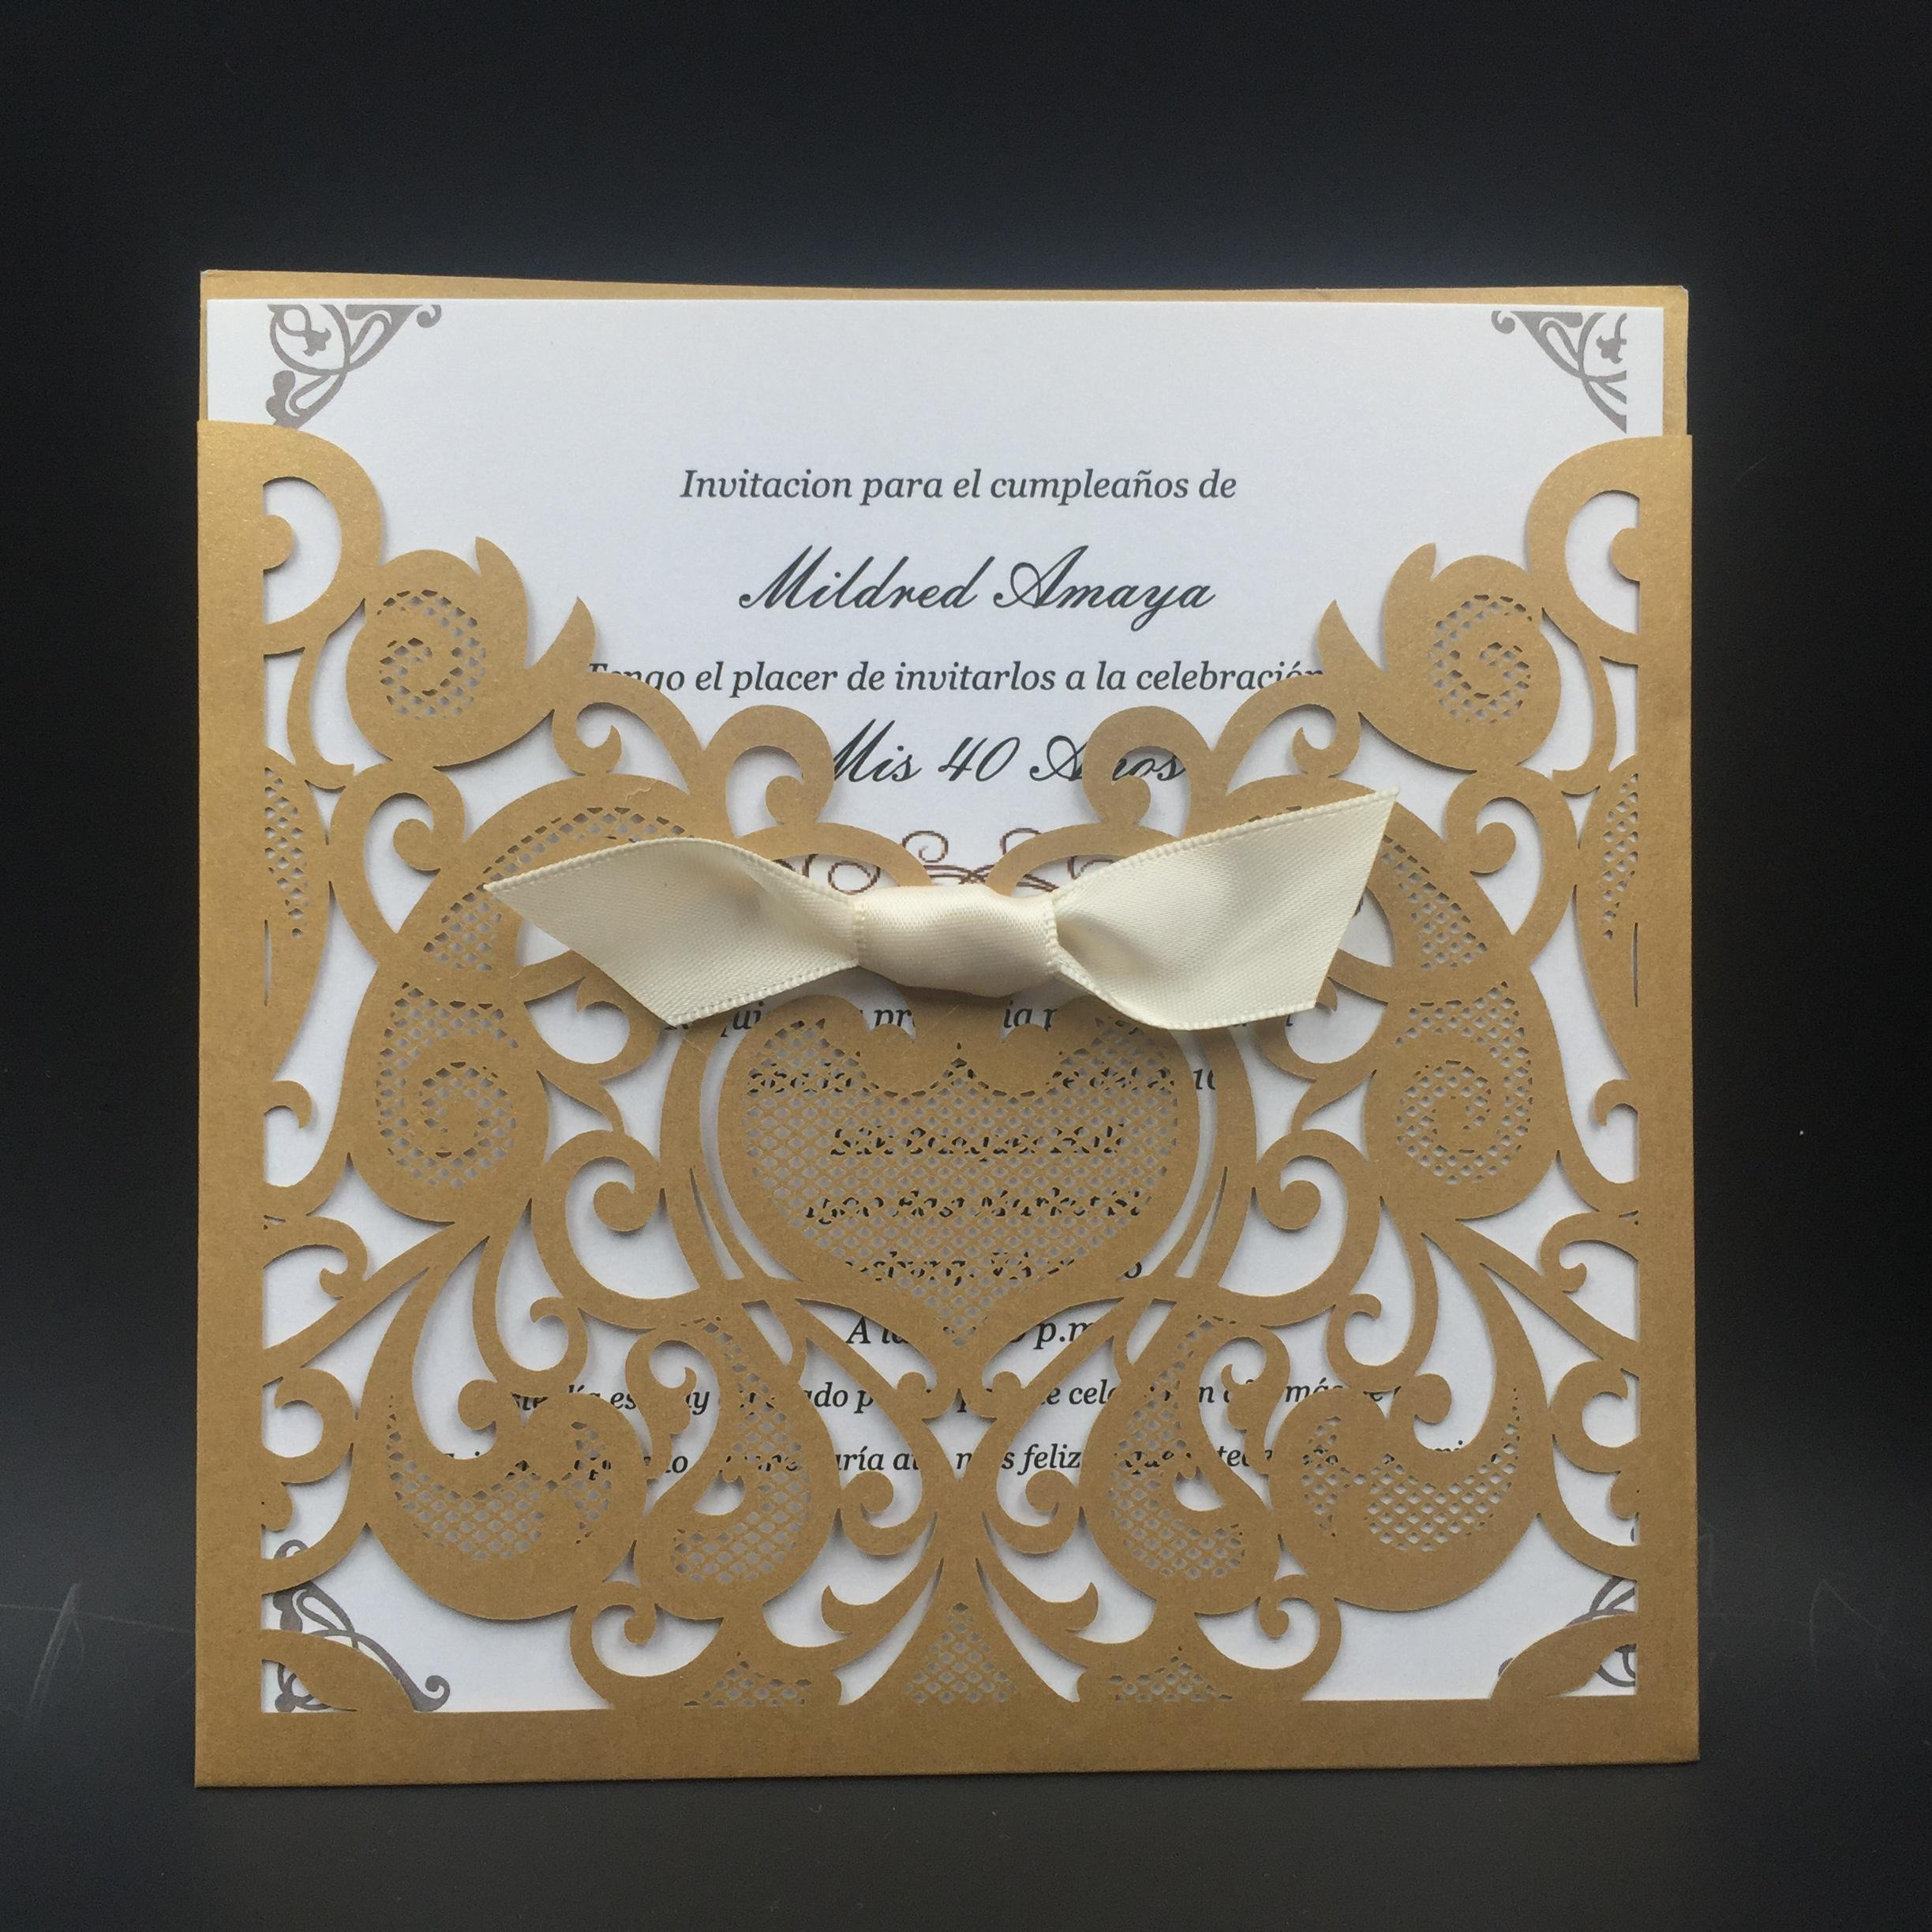 Hot sale new design gold purple ribbon wedding invitations cards hot sale new design gold purple ribbon wedding invitations cards hollow out laser cut greeting cards via dhl shipping free cool wedding invitations design kristyandbryce Image collections